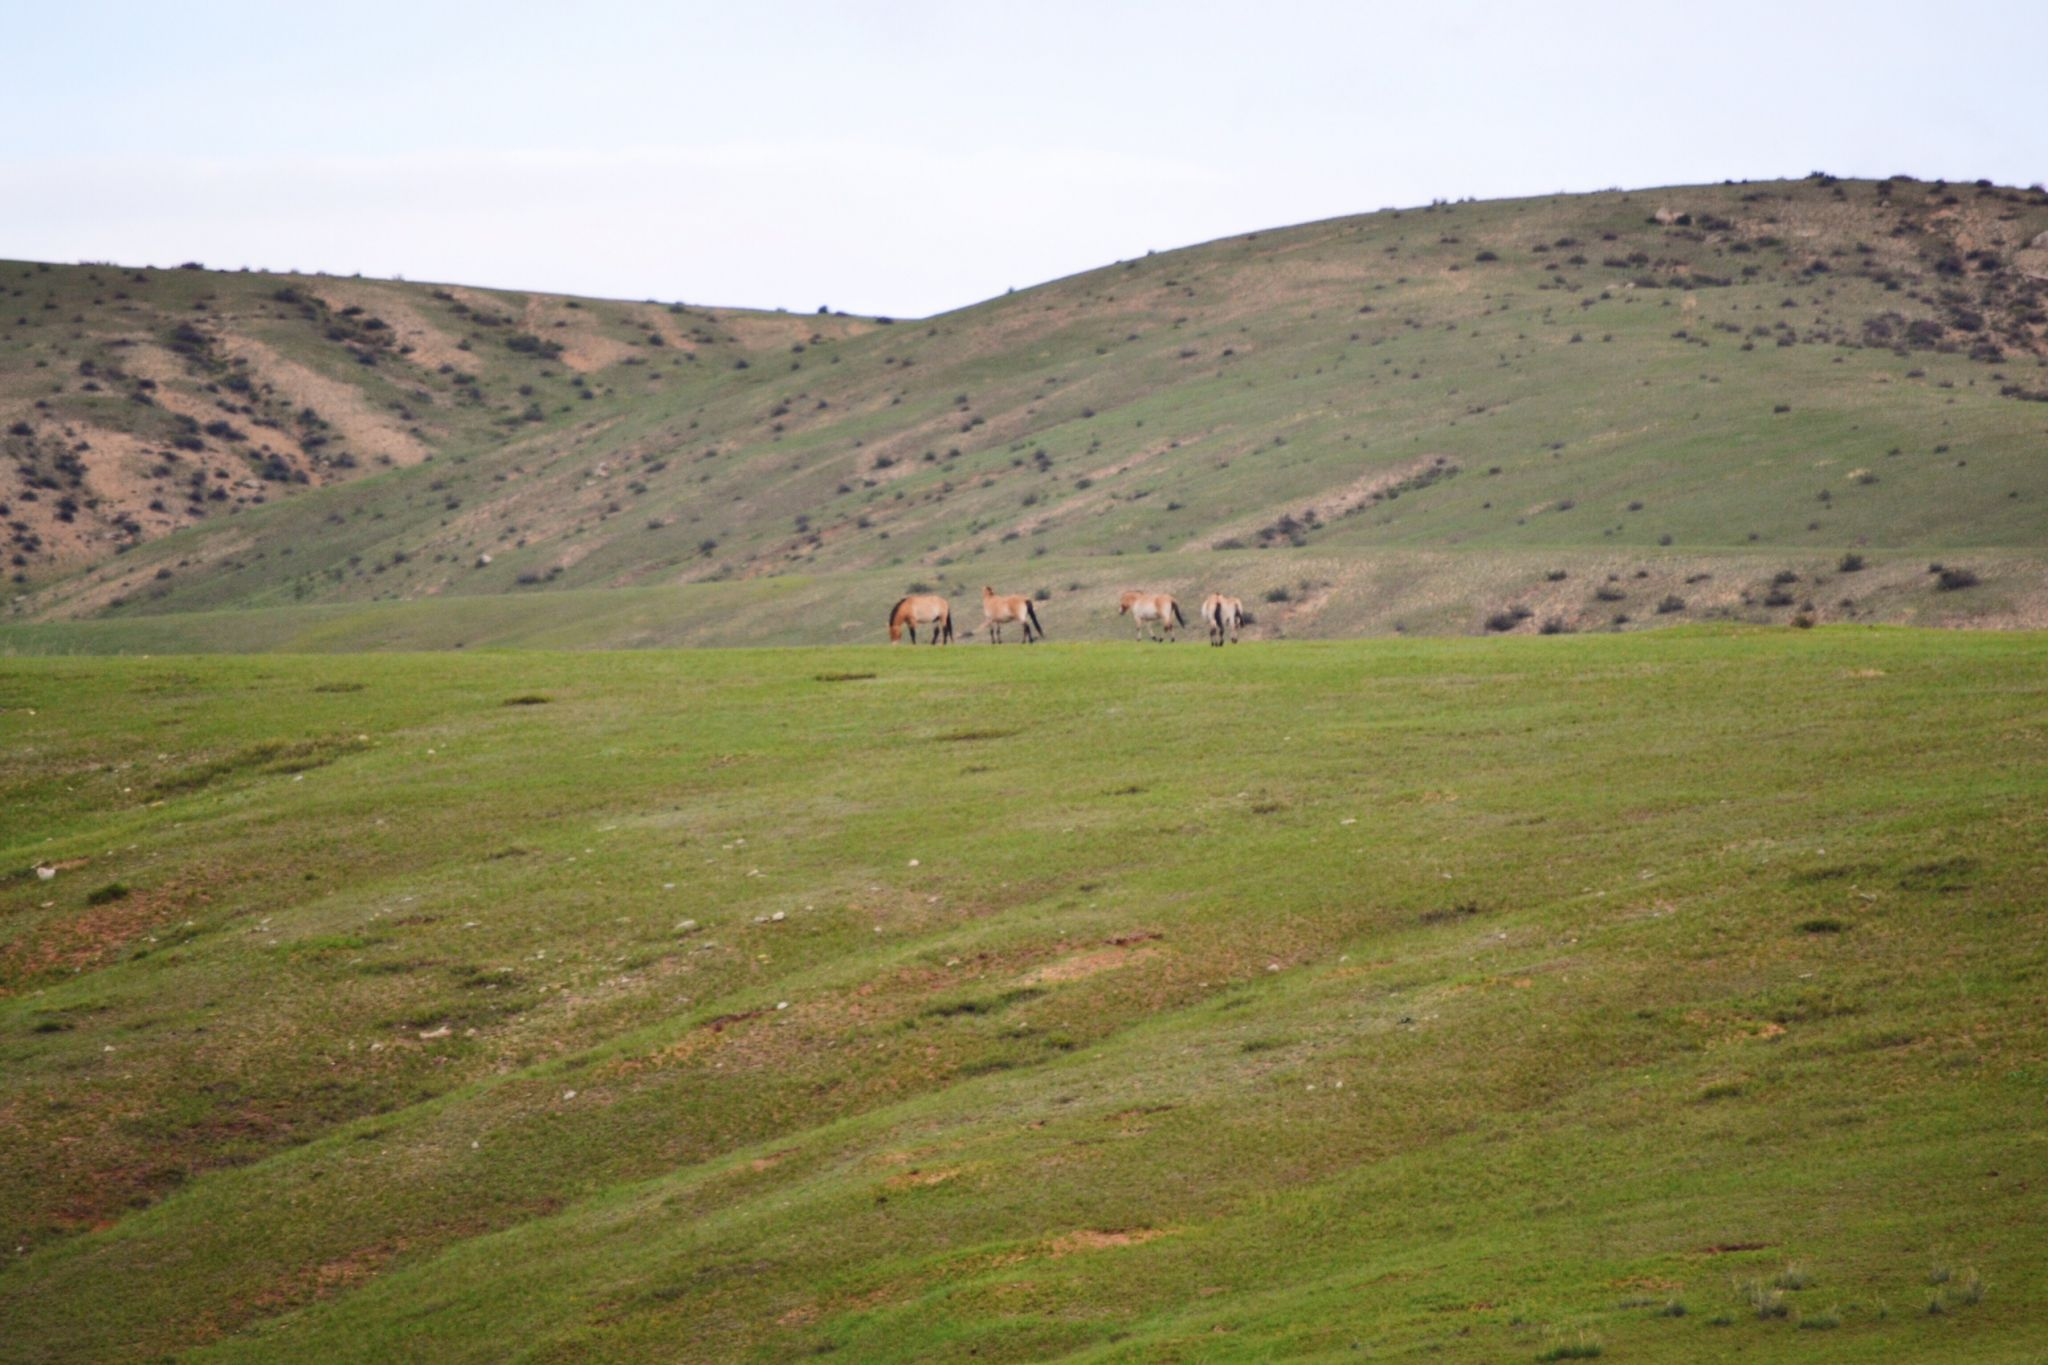 Picture of the wildlife Przewalski's Horses in Mongolia